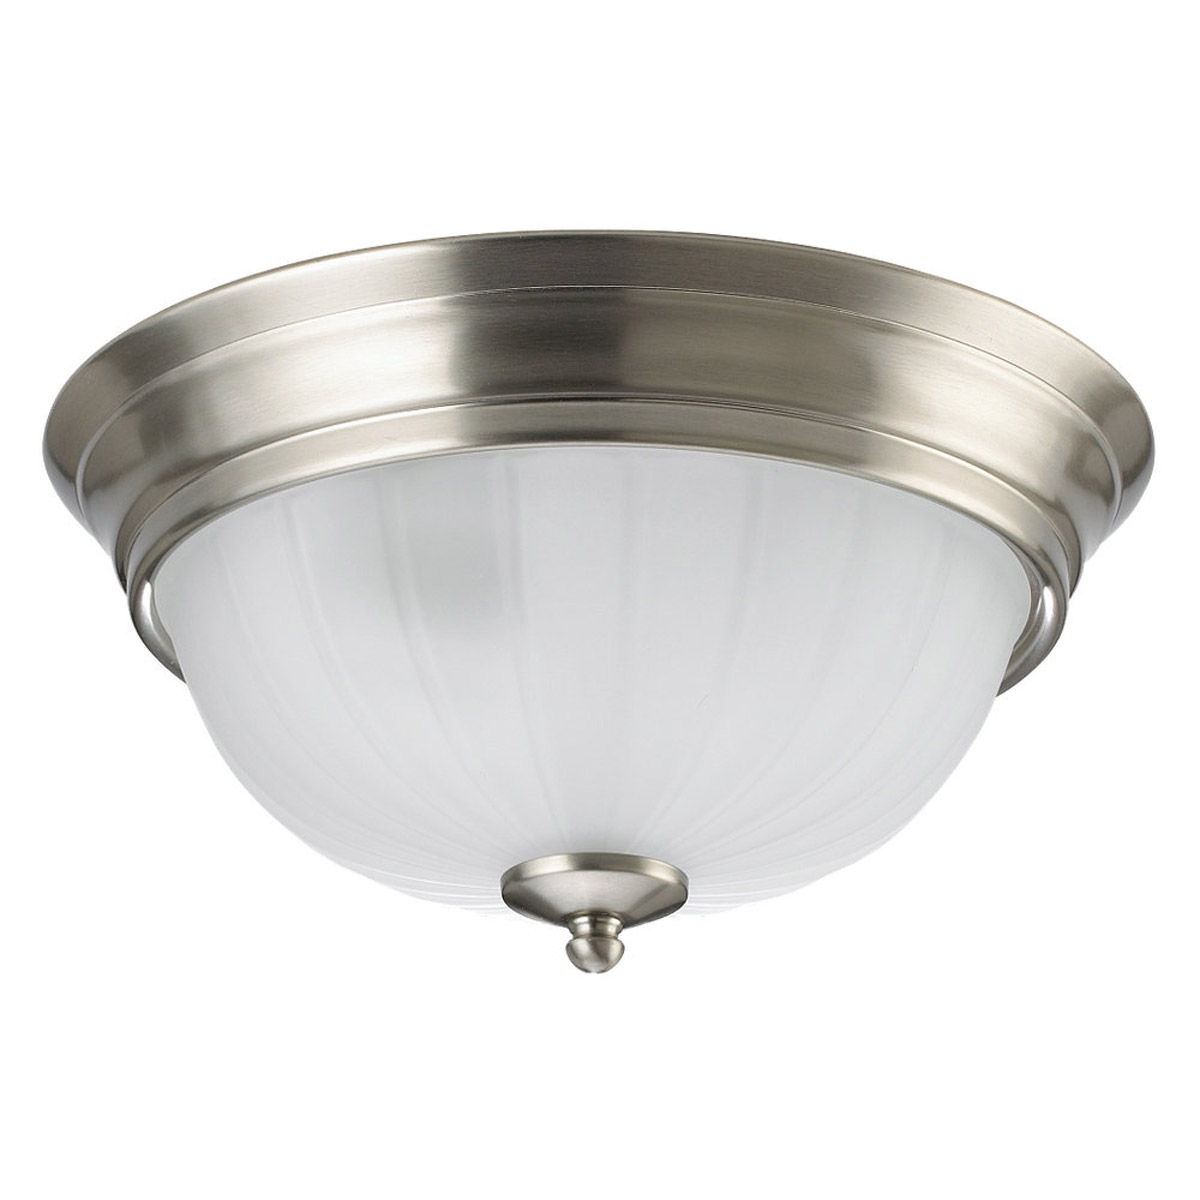 Sea Gull Lighting Floyd 1 Light Flush Mount in Brushed Nickel 79504BLE-962